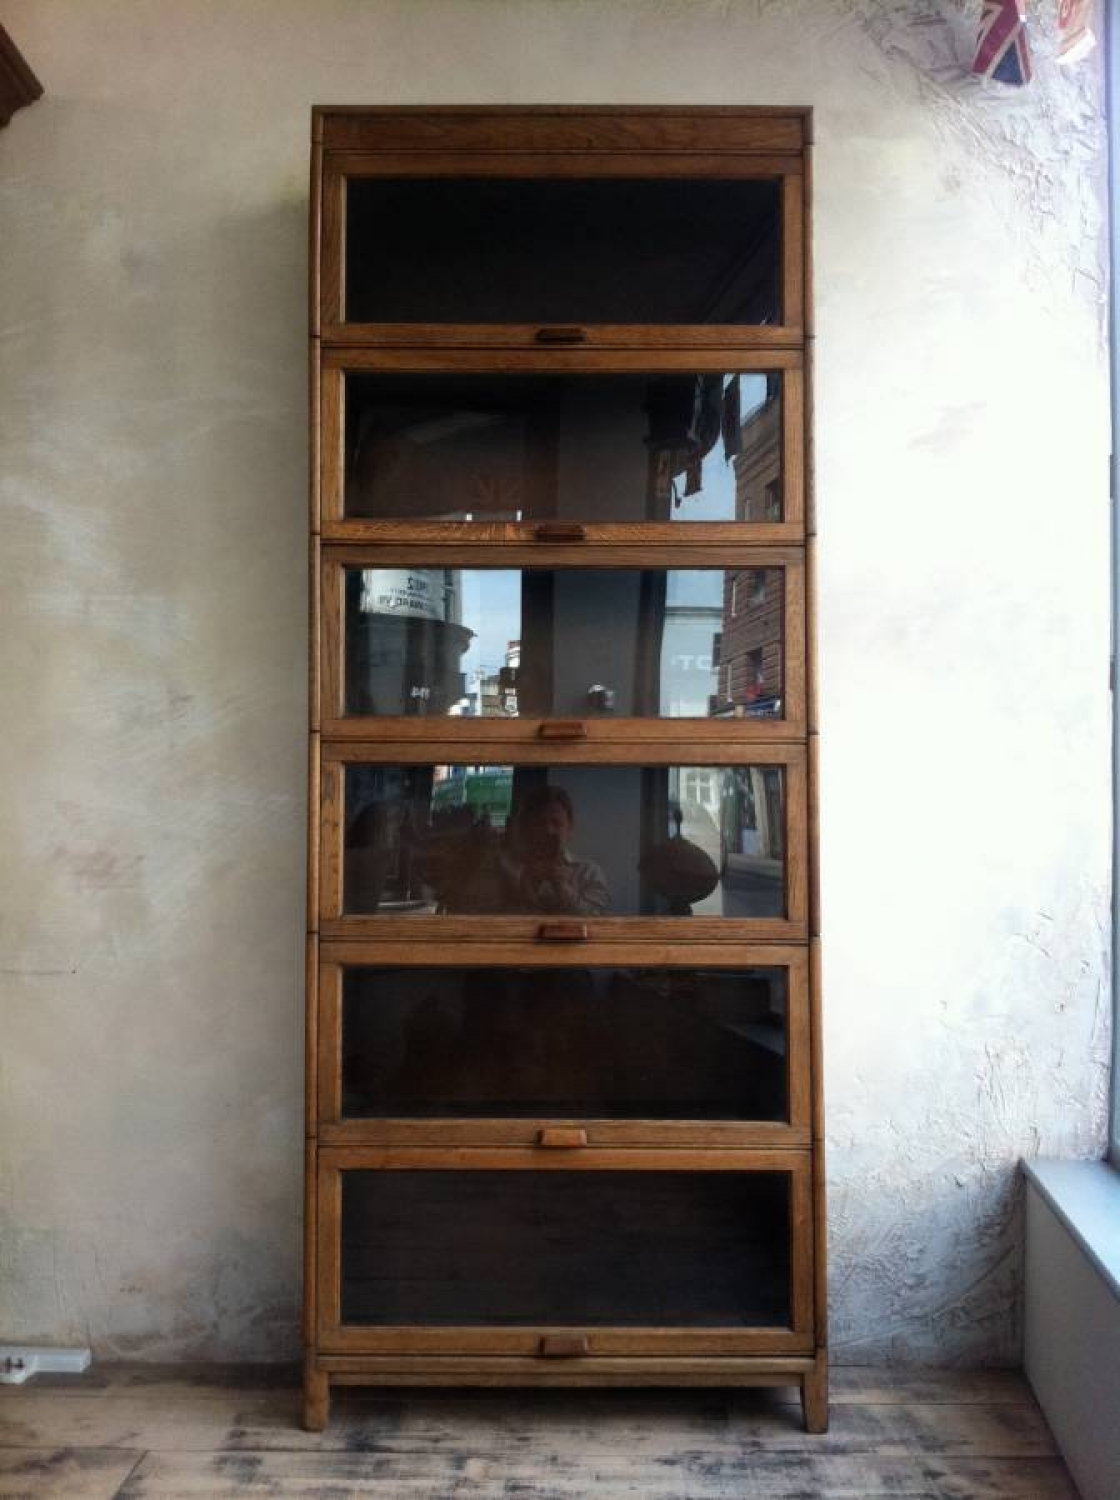 Sectional Oak bookcase by Gunn